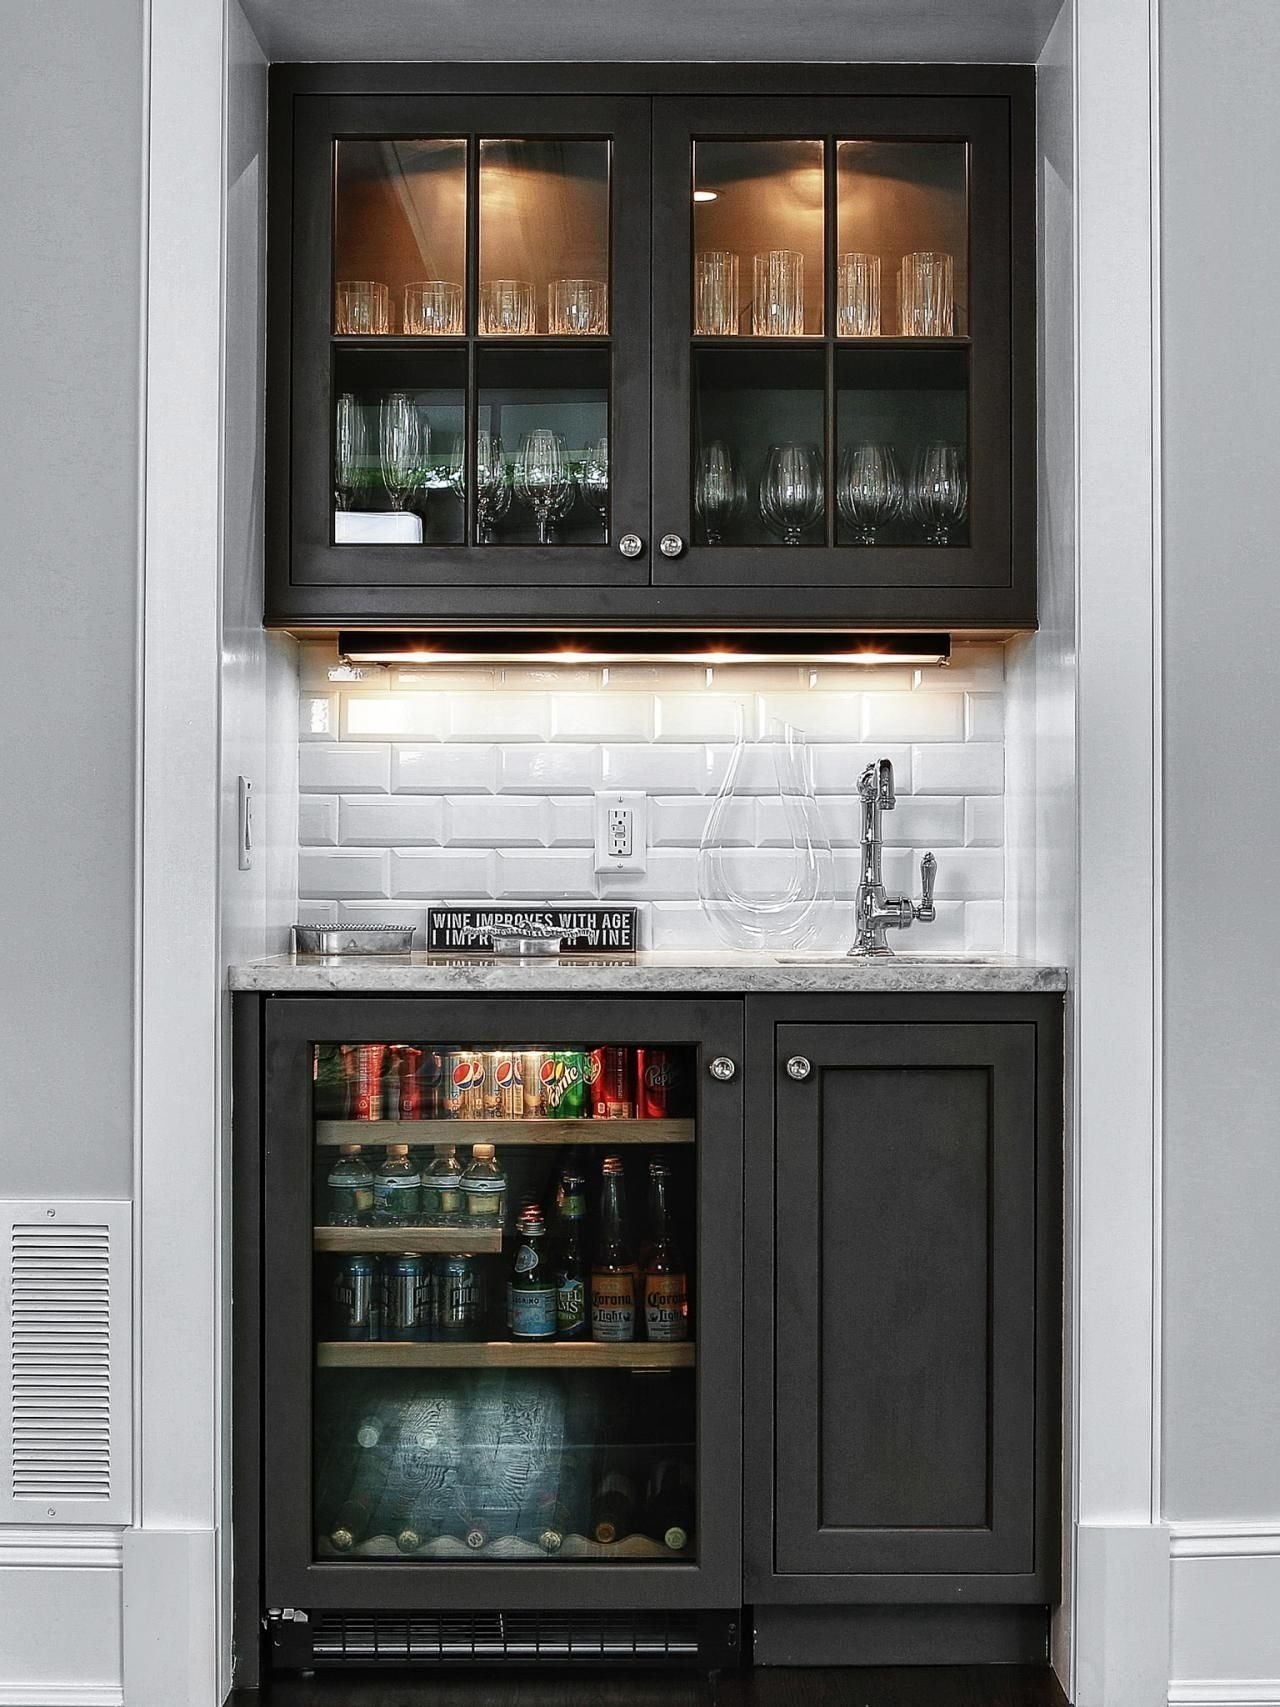 10 Elegant Basement Bar Ideas For Small Spaces 15 stylish small home bar ideas remodeling ideas hgtv and basements 1 2020